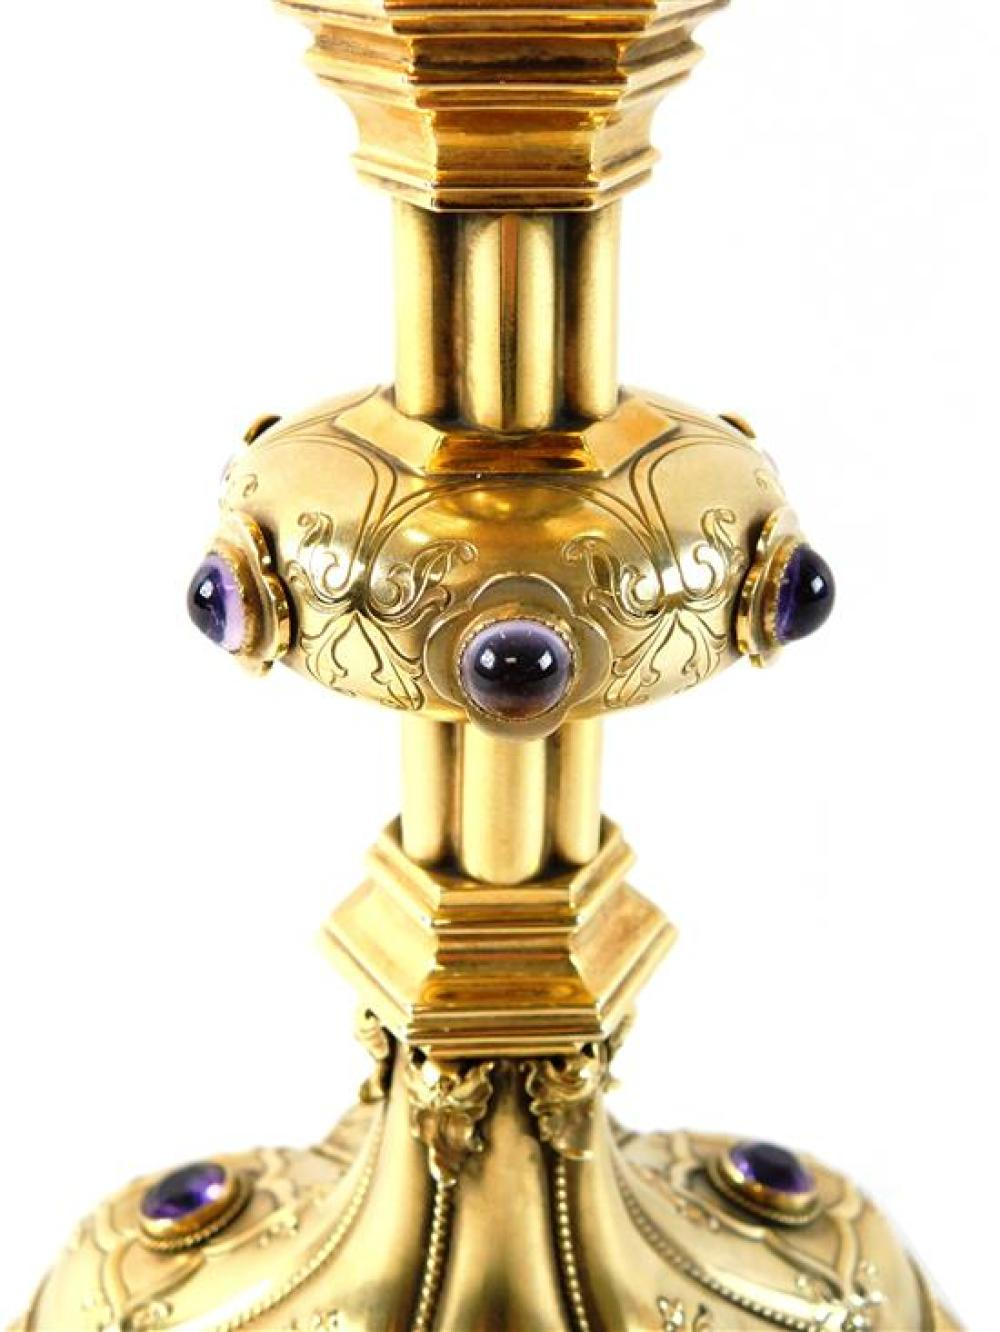 Chalice, 14K and silver with amethyst accents, stamped 14K yellow gold cup with gold tone base, chalice measures 10 ¾ inches tall wi...